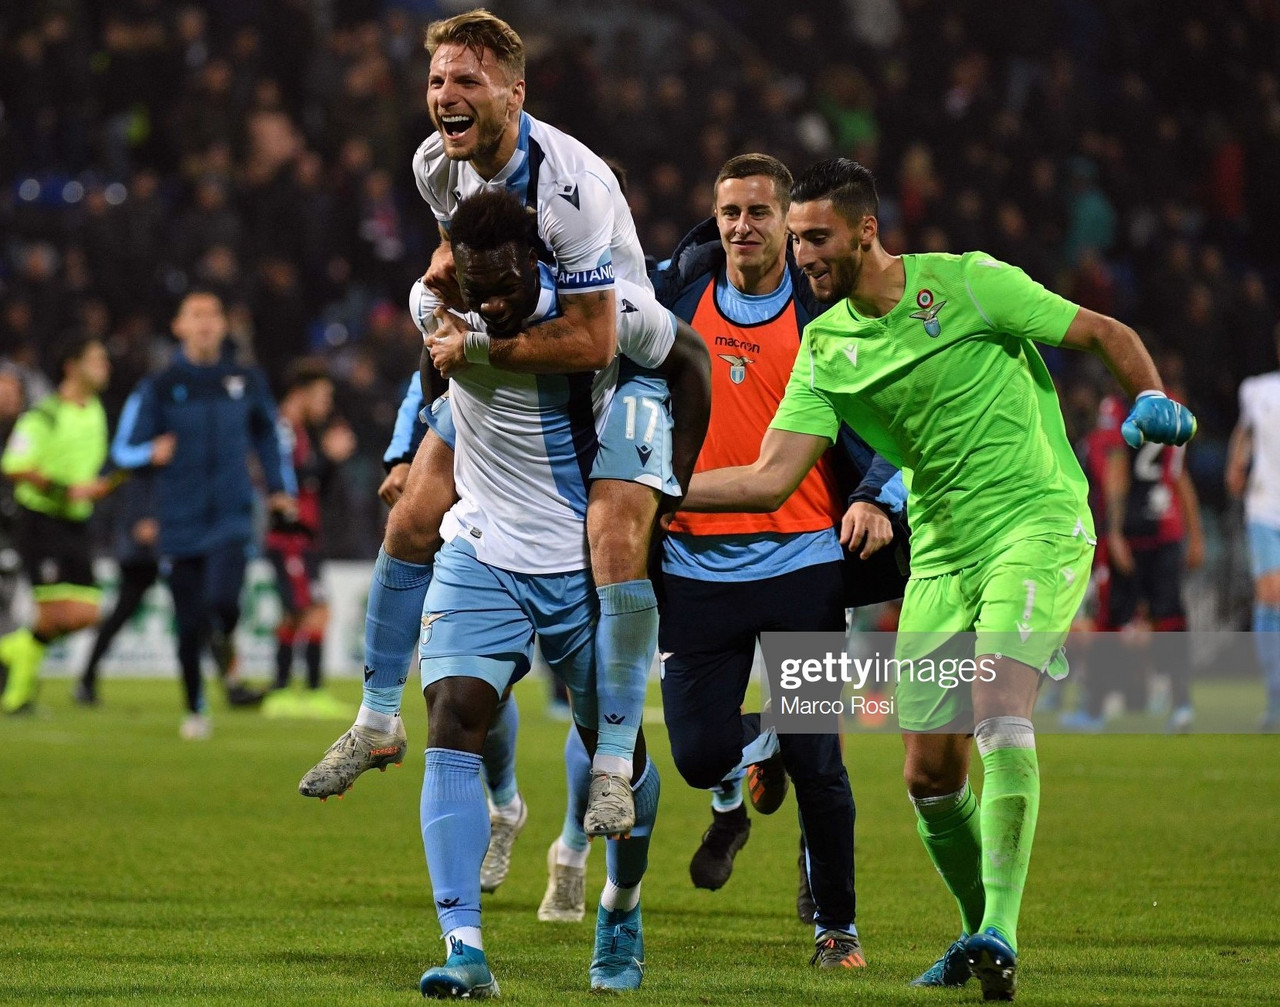 Cagliari 1-2 Lazio: Lazio score twice late into injury time